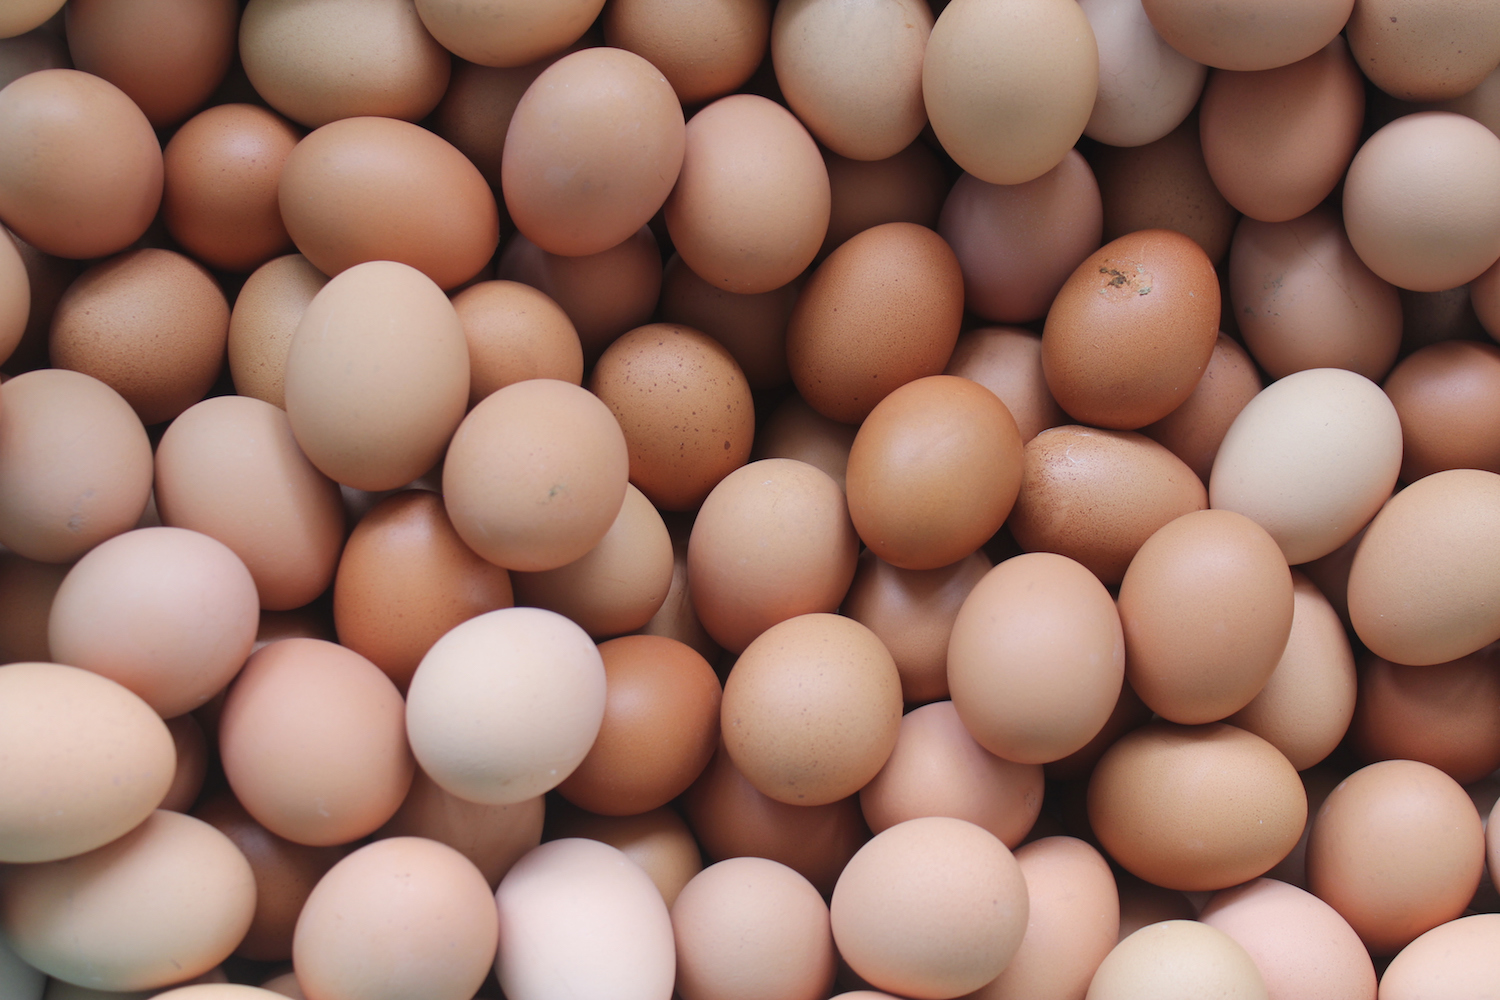 how does salmonella get into eggs real simple